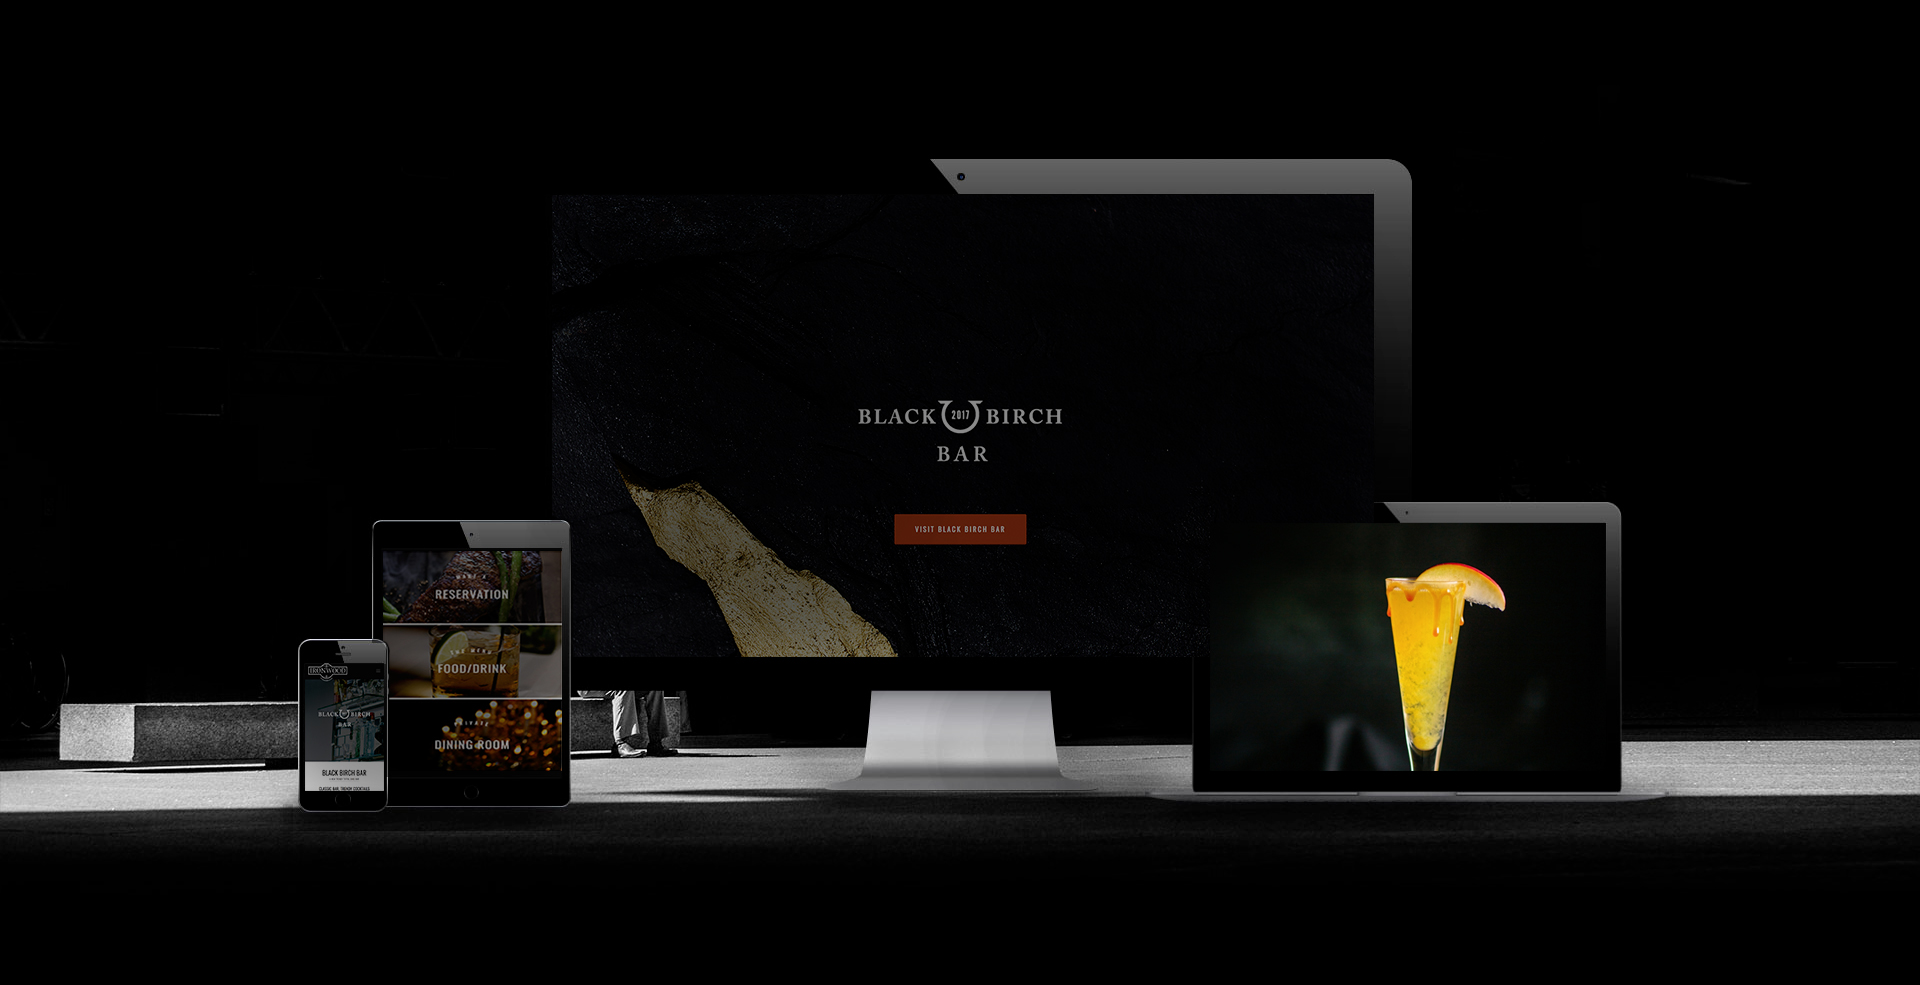 website-design-imac-ipad-iphone-mock-up